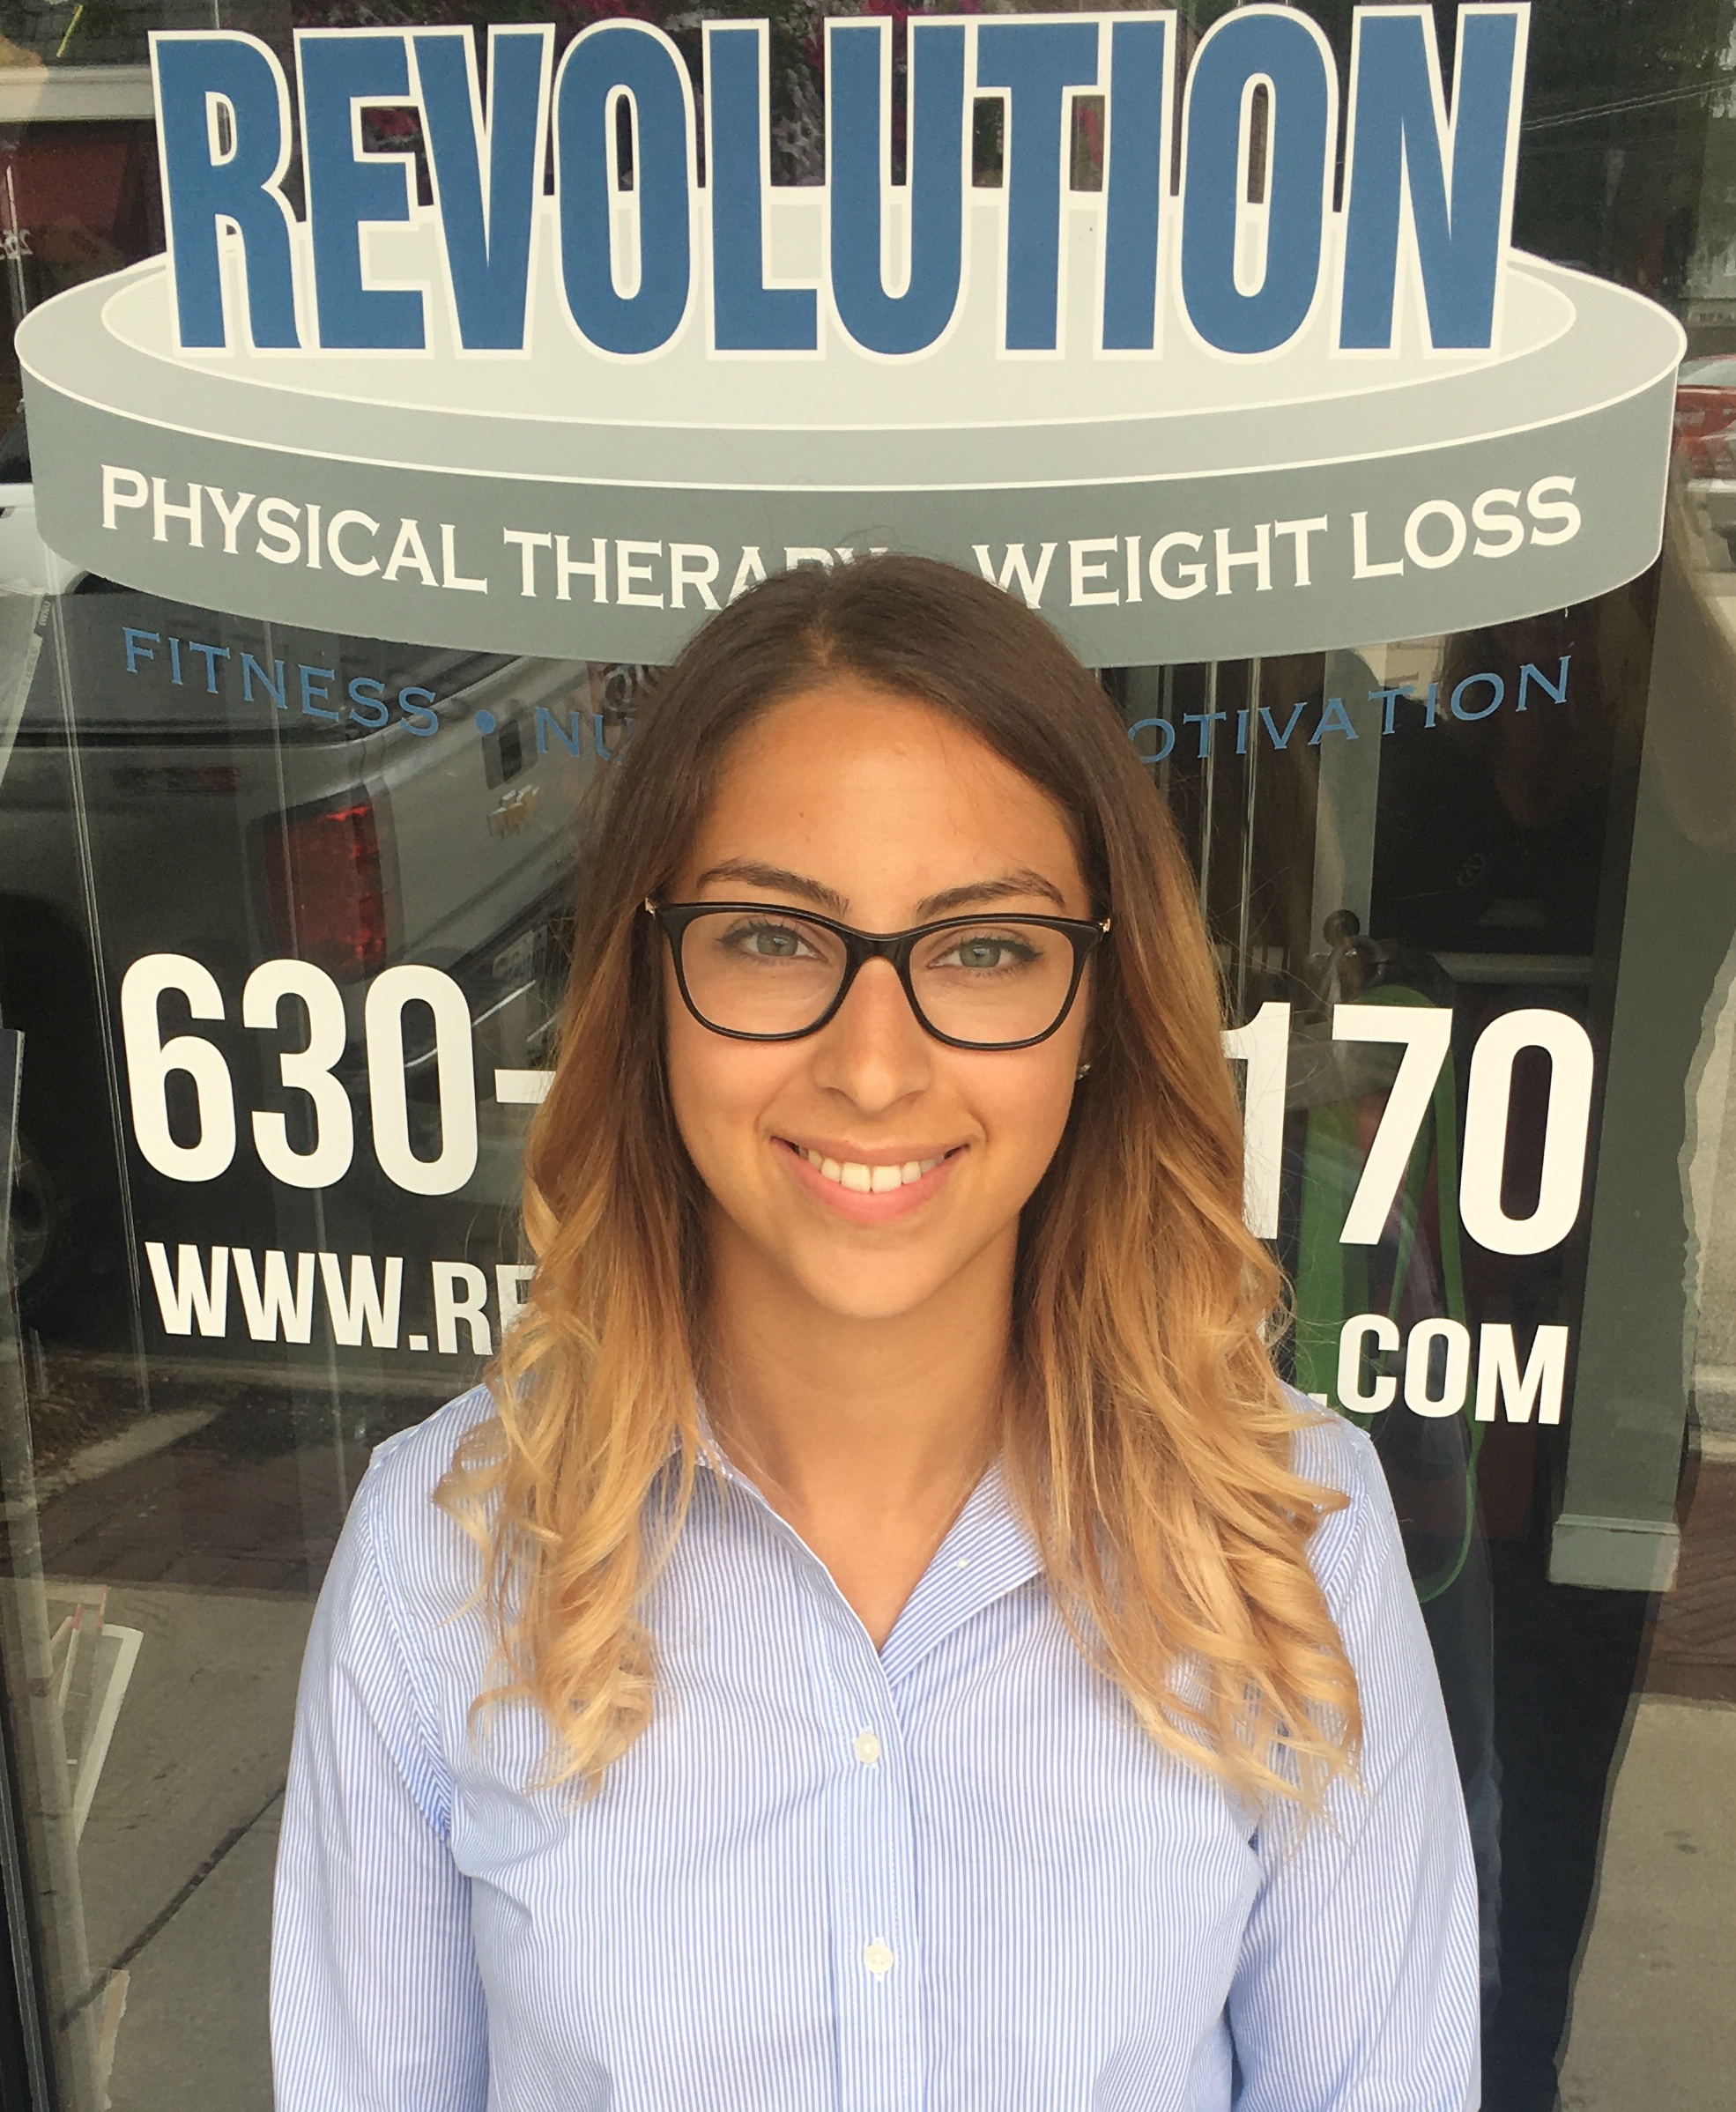 Westmont Revolution Physical Therapy Weight Loss